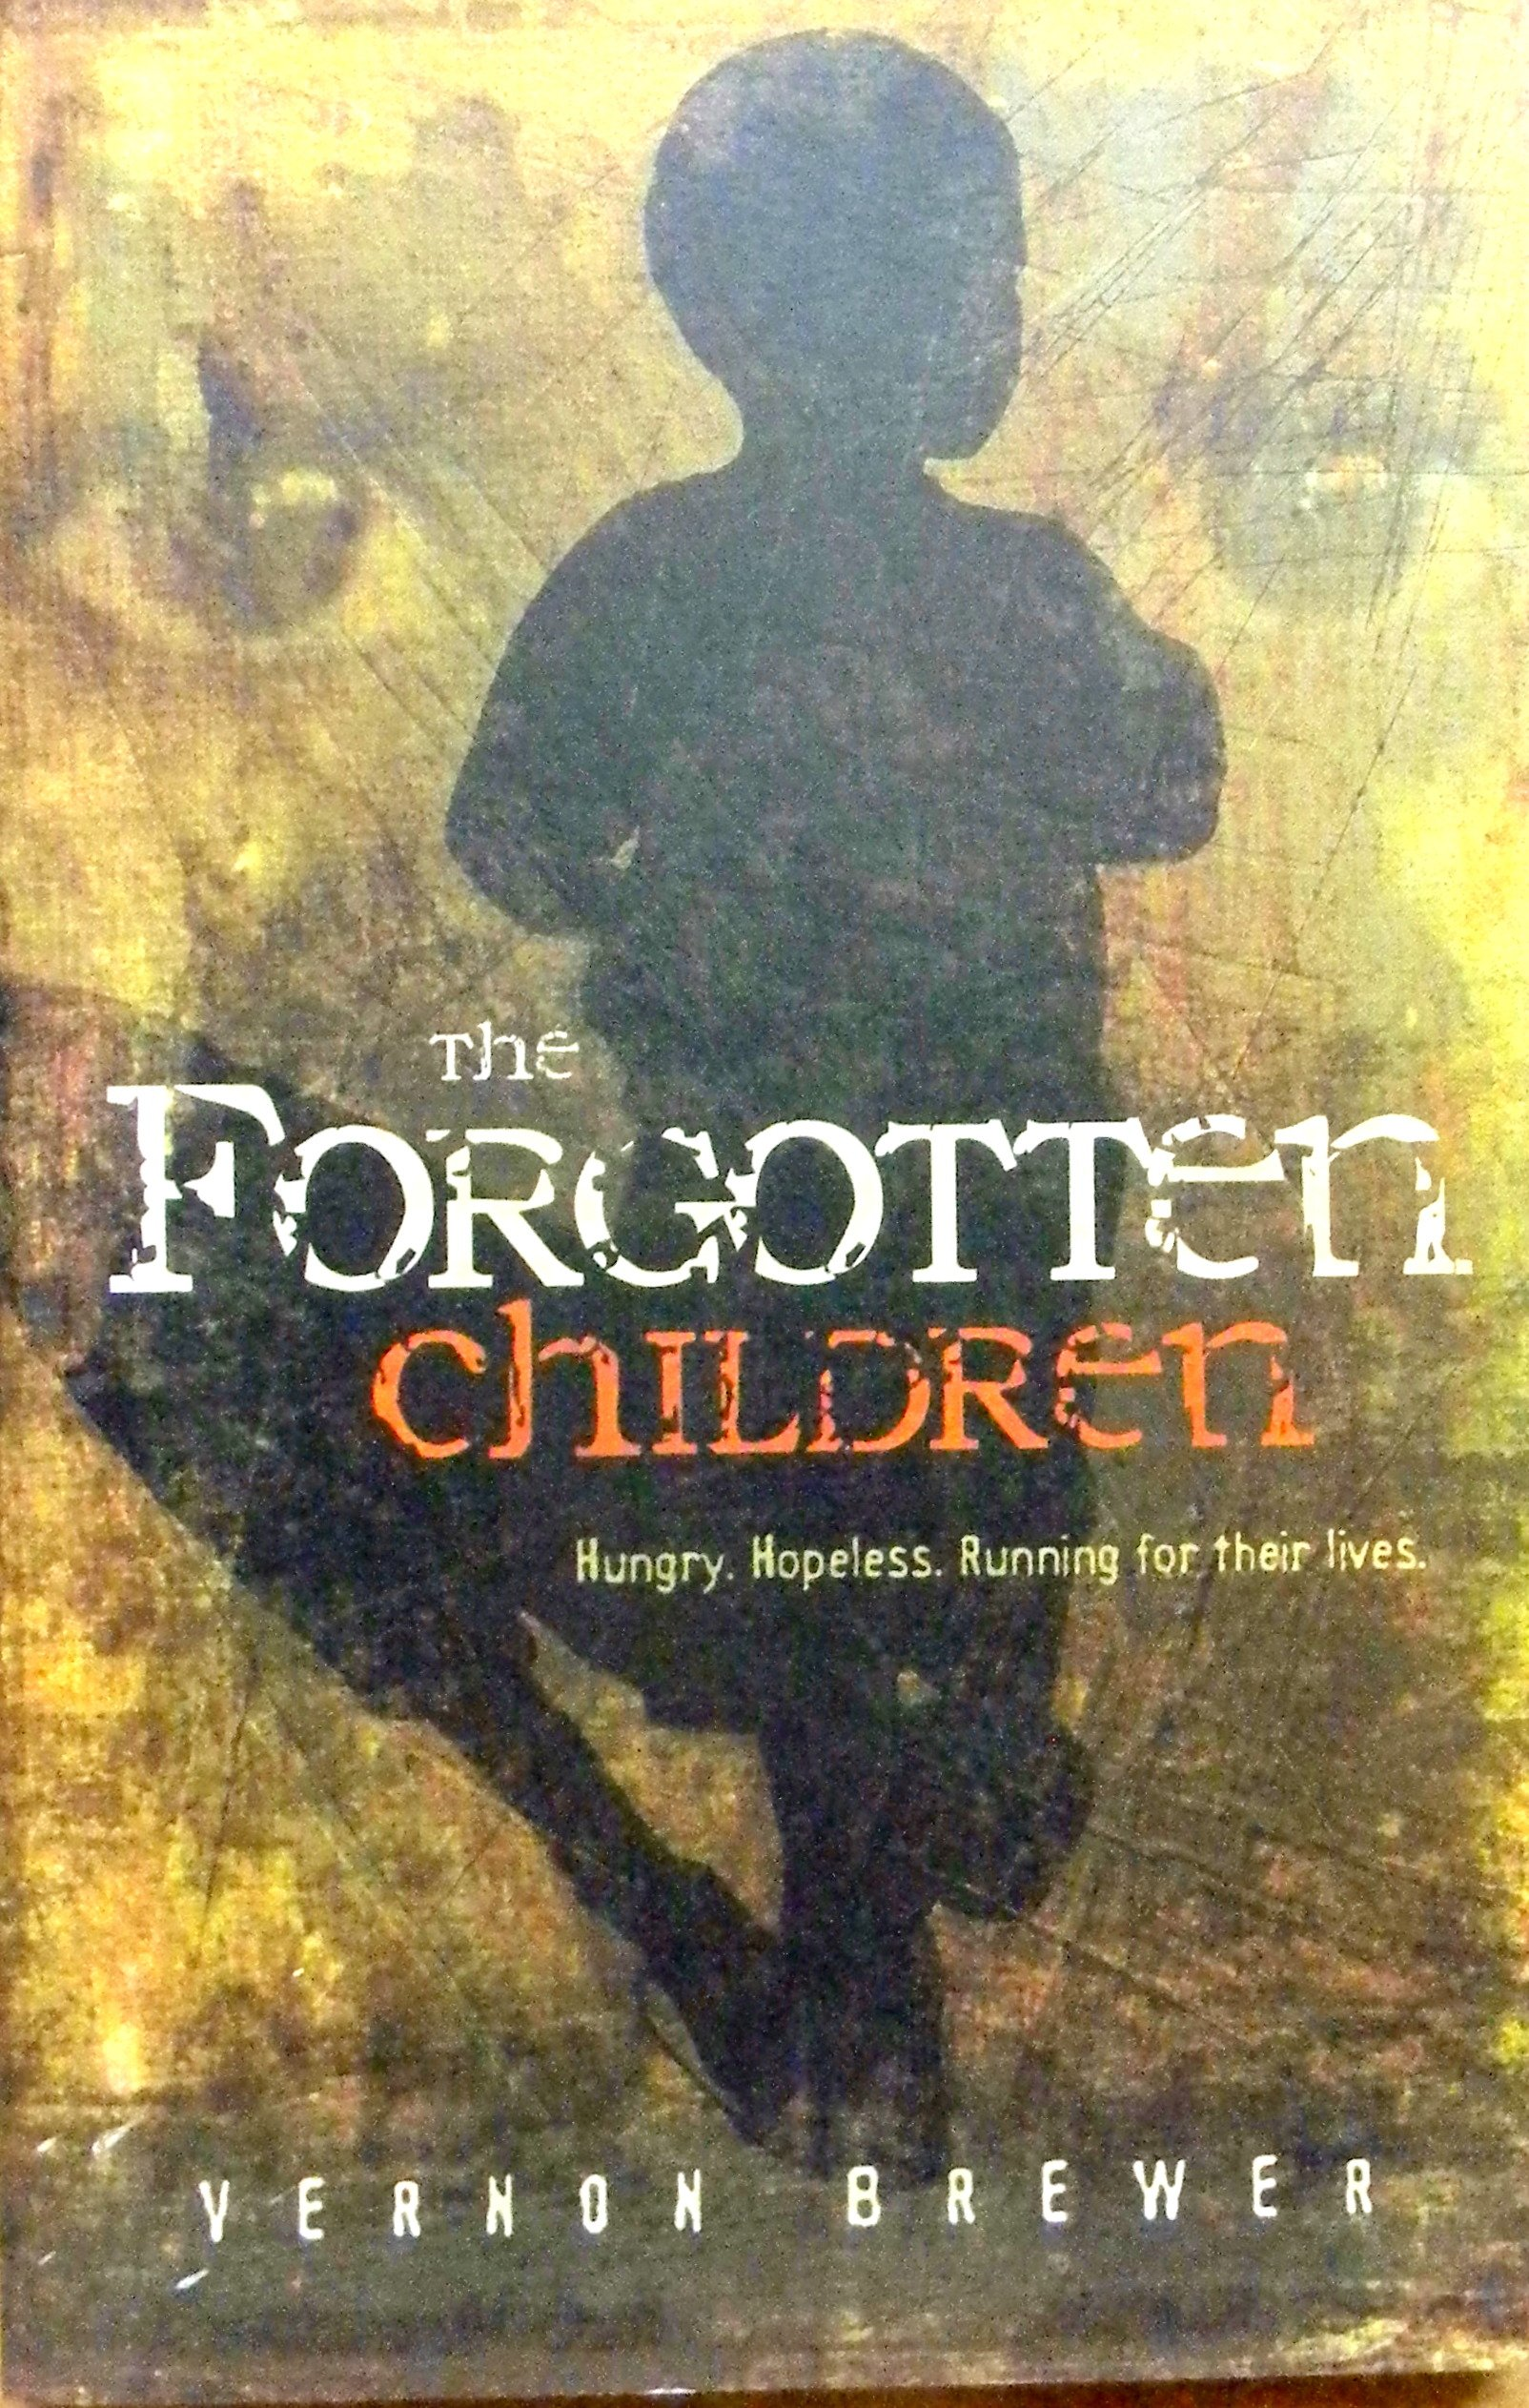 Download The Forgotten Children: Hungry, Hopeless, Running for Their Lives pdf